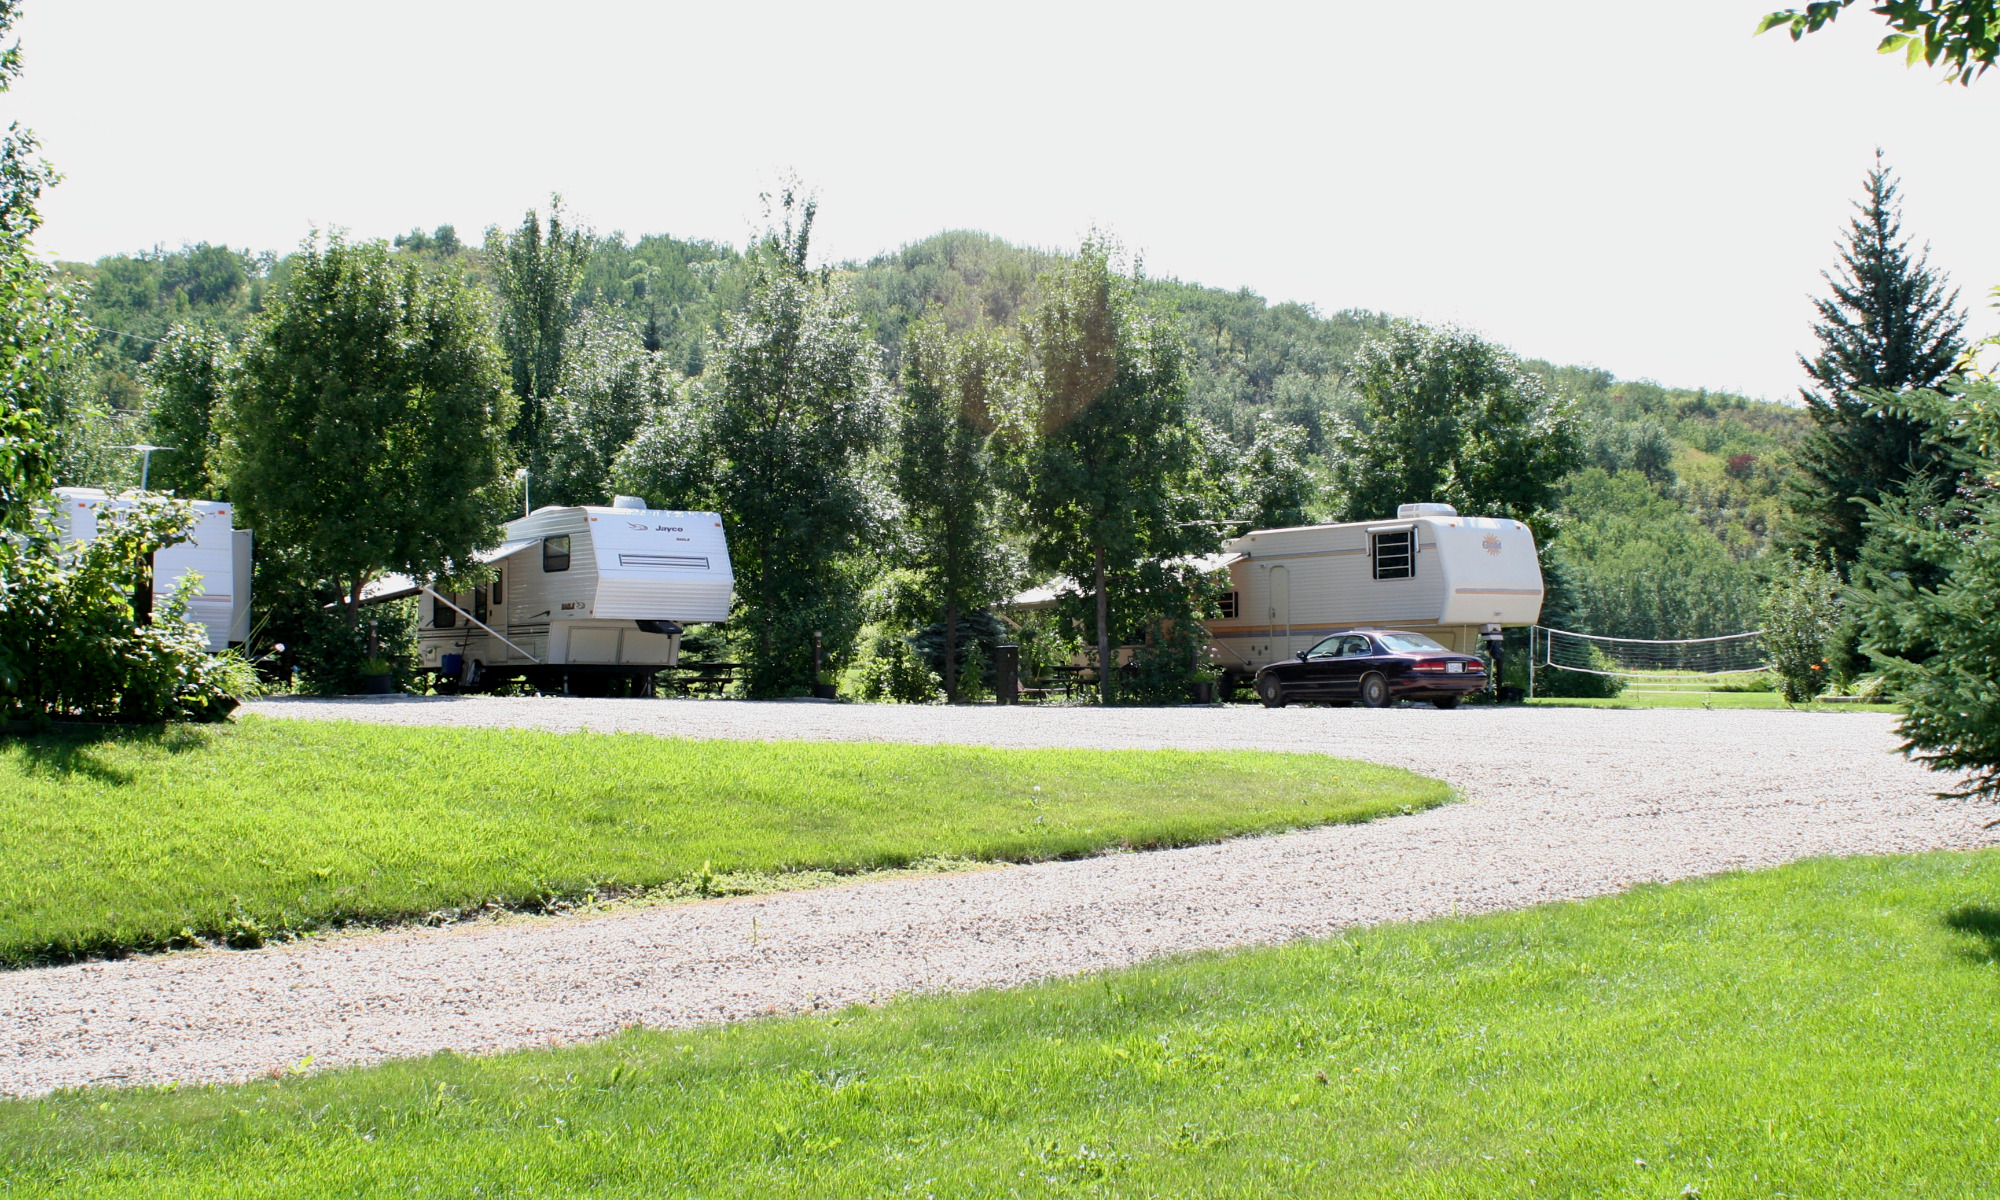 RV Park view with hills